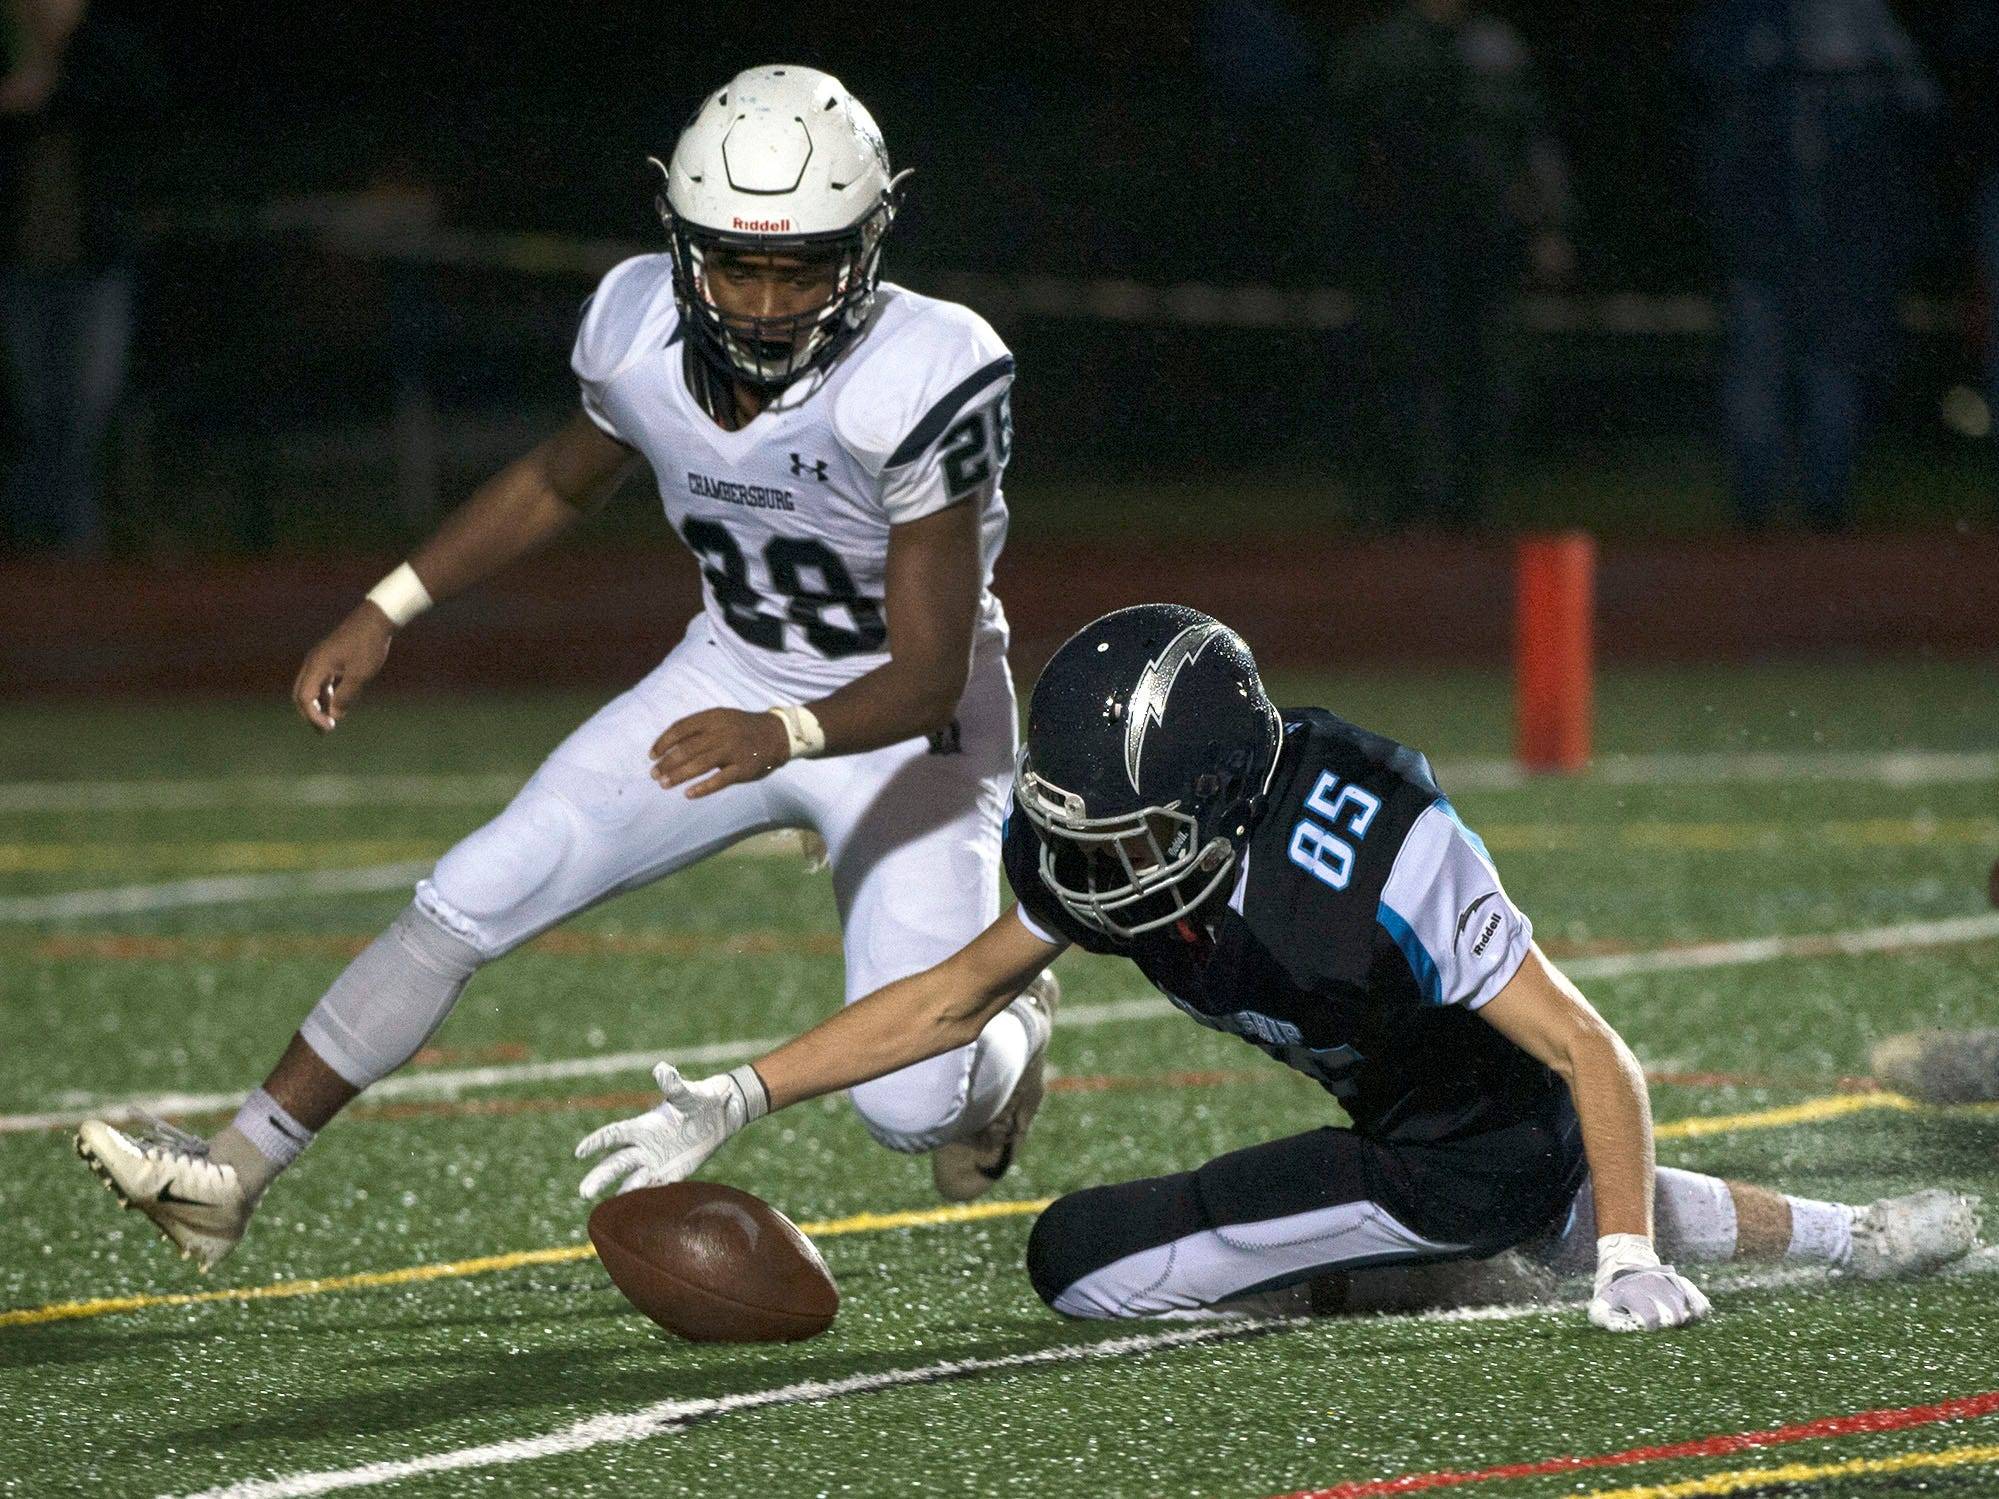 Chambersburg's Keyshawn Jones chases the ball with Adam Schlemmer (85) of Manheim Central. Chambersburg Trojans dropped a close game 20-17 to Manheim Township Blue Streaks in the rain during PIAA District 3 playoff football on Friday, Nov. 2, 2018.